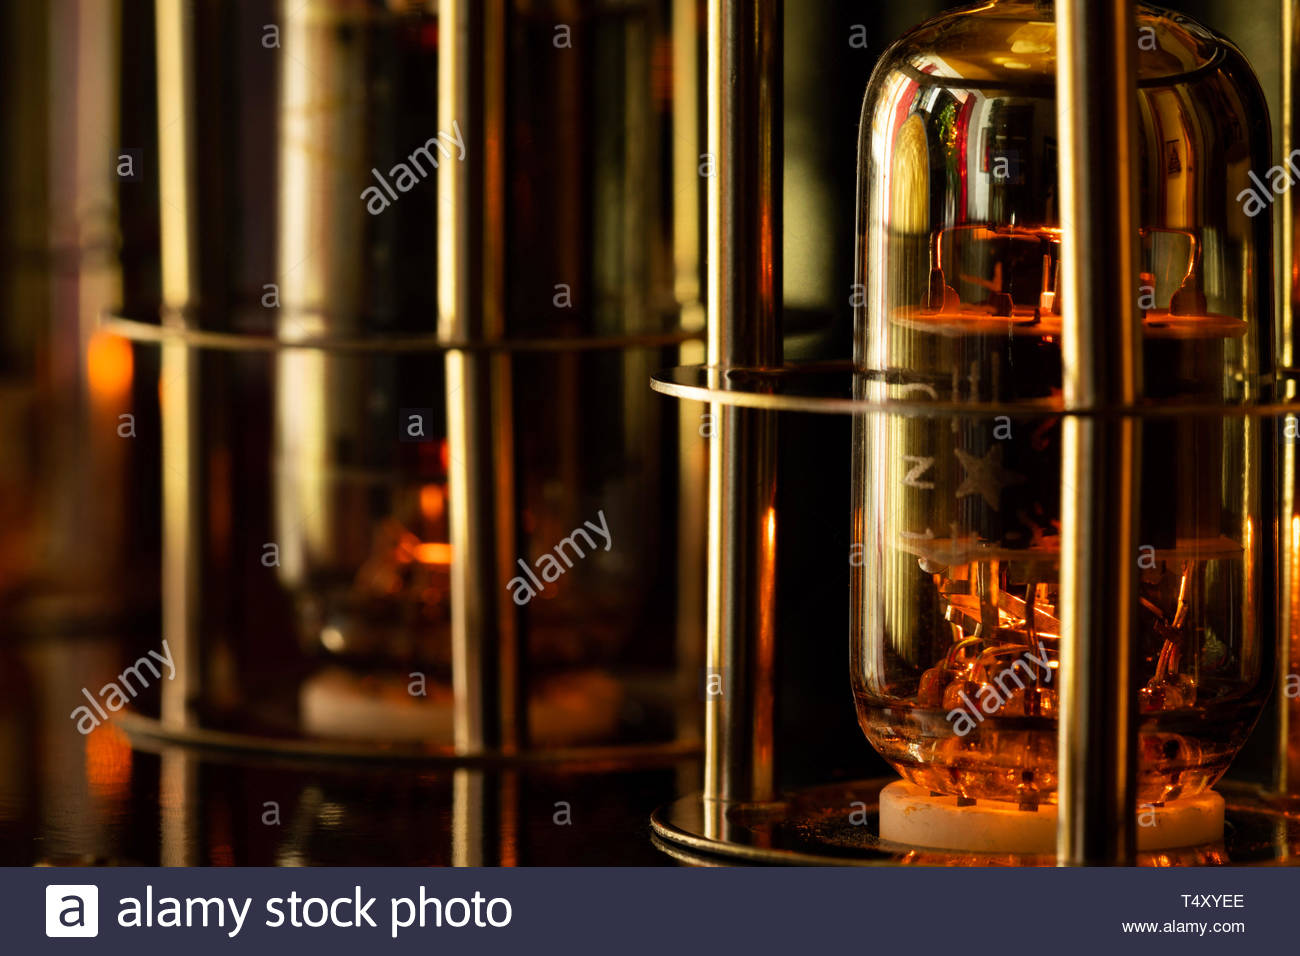 glass-enclosed components - Stock Image